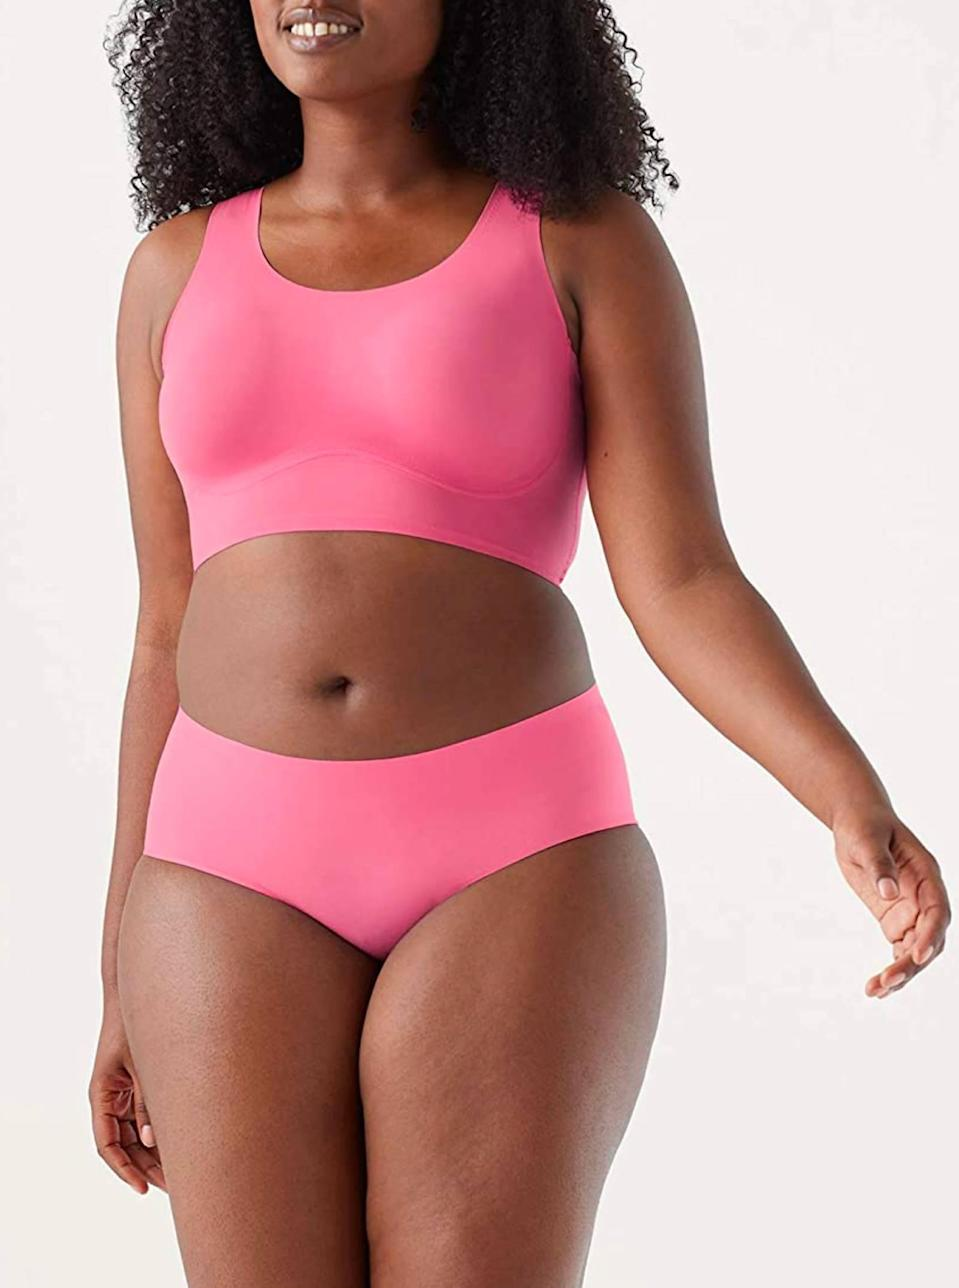 """True & Co makes some of the best <a href=""""https://www.glamour.com/gallery/best-wireless-bras?mbid=synd_yahoo_rss"""" rel=""""nofollow noopener"""" target=""""_blank"""" data-ylk=""""slk:seamless bras"""" class=""""link rapid-noclick-resp"""">seamless bras</a> in the game, so it should come as no surprise that its underwear is just as good. Our top pick? These hot pink boyshorts, because let's be real—when you're wearing <a href=""""https://www.glamour.com/gallery/best-black-leggings-to-buy-now?mbid=synd_yahoo_rss"""" rel=""""nofollow noopener"""" target=""""_blank"""" data-ylk=""""slk:black leggings"""" class=""""link rapid-noclick-resp"""">black leggings</a> or <a href=""""https://www.glamour.com/story/best-bike-shorts?mbid=synd_yahoo_rss"""" rel=""""nofollow noopener"""" target=""""_blank"""" data-ylk=""""slk:bike shorts"""" class=""""link rapid-noclick-resp"""">bike shorts</a>, it doesn't really matter what color panties you have on. $16, Amazon. <a href=""""https://www.amazon.com/True-Co-Boyshort-Multipack-Chateau/dp/B08Q3XWNLZ/ref="""" rel=""""nofollow noopener"""" target=""""_blank"""" data-ylk=""""slk:Get it now!"""" class=""""link rapid-noclick-resp"""">Get it now!</a>"""